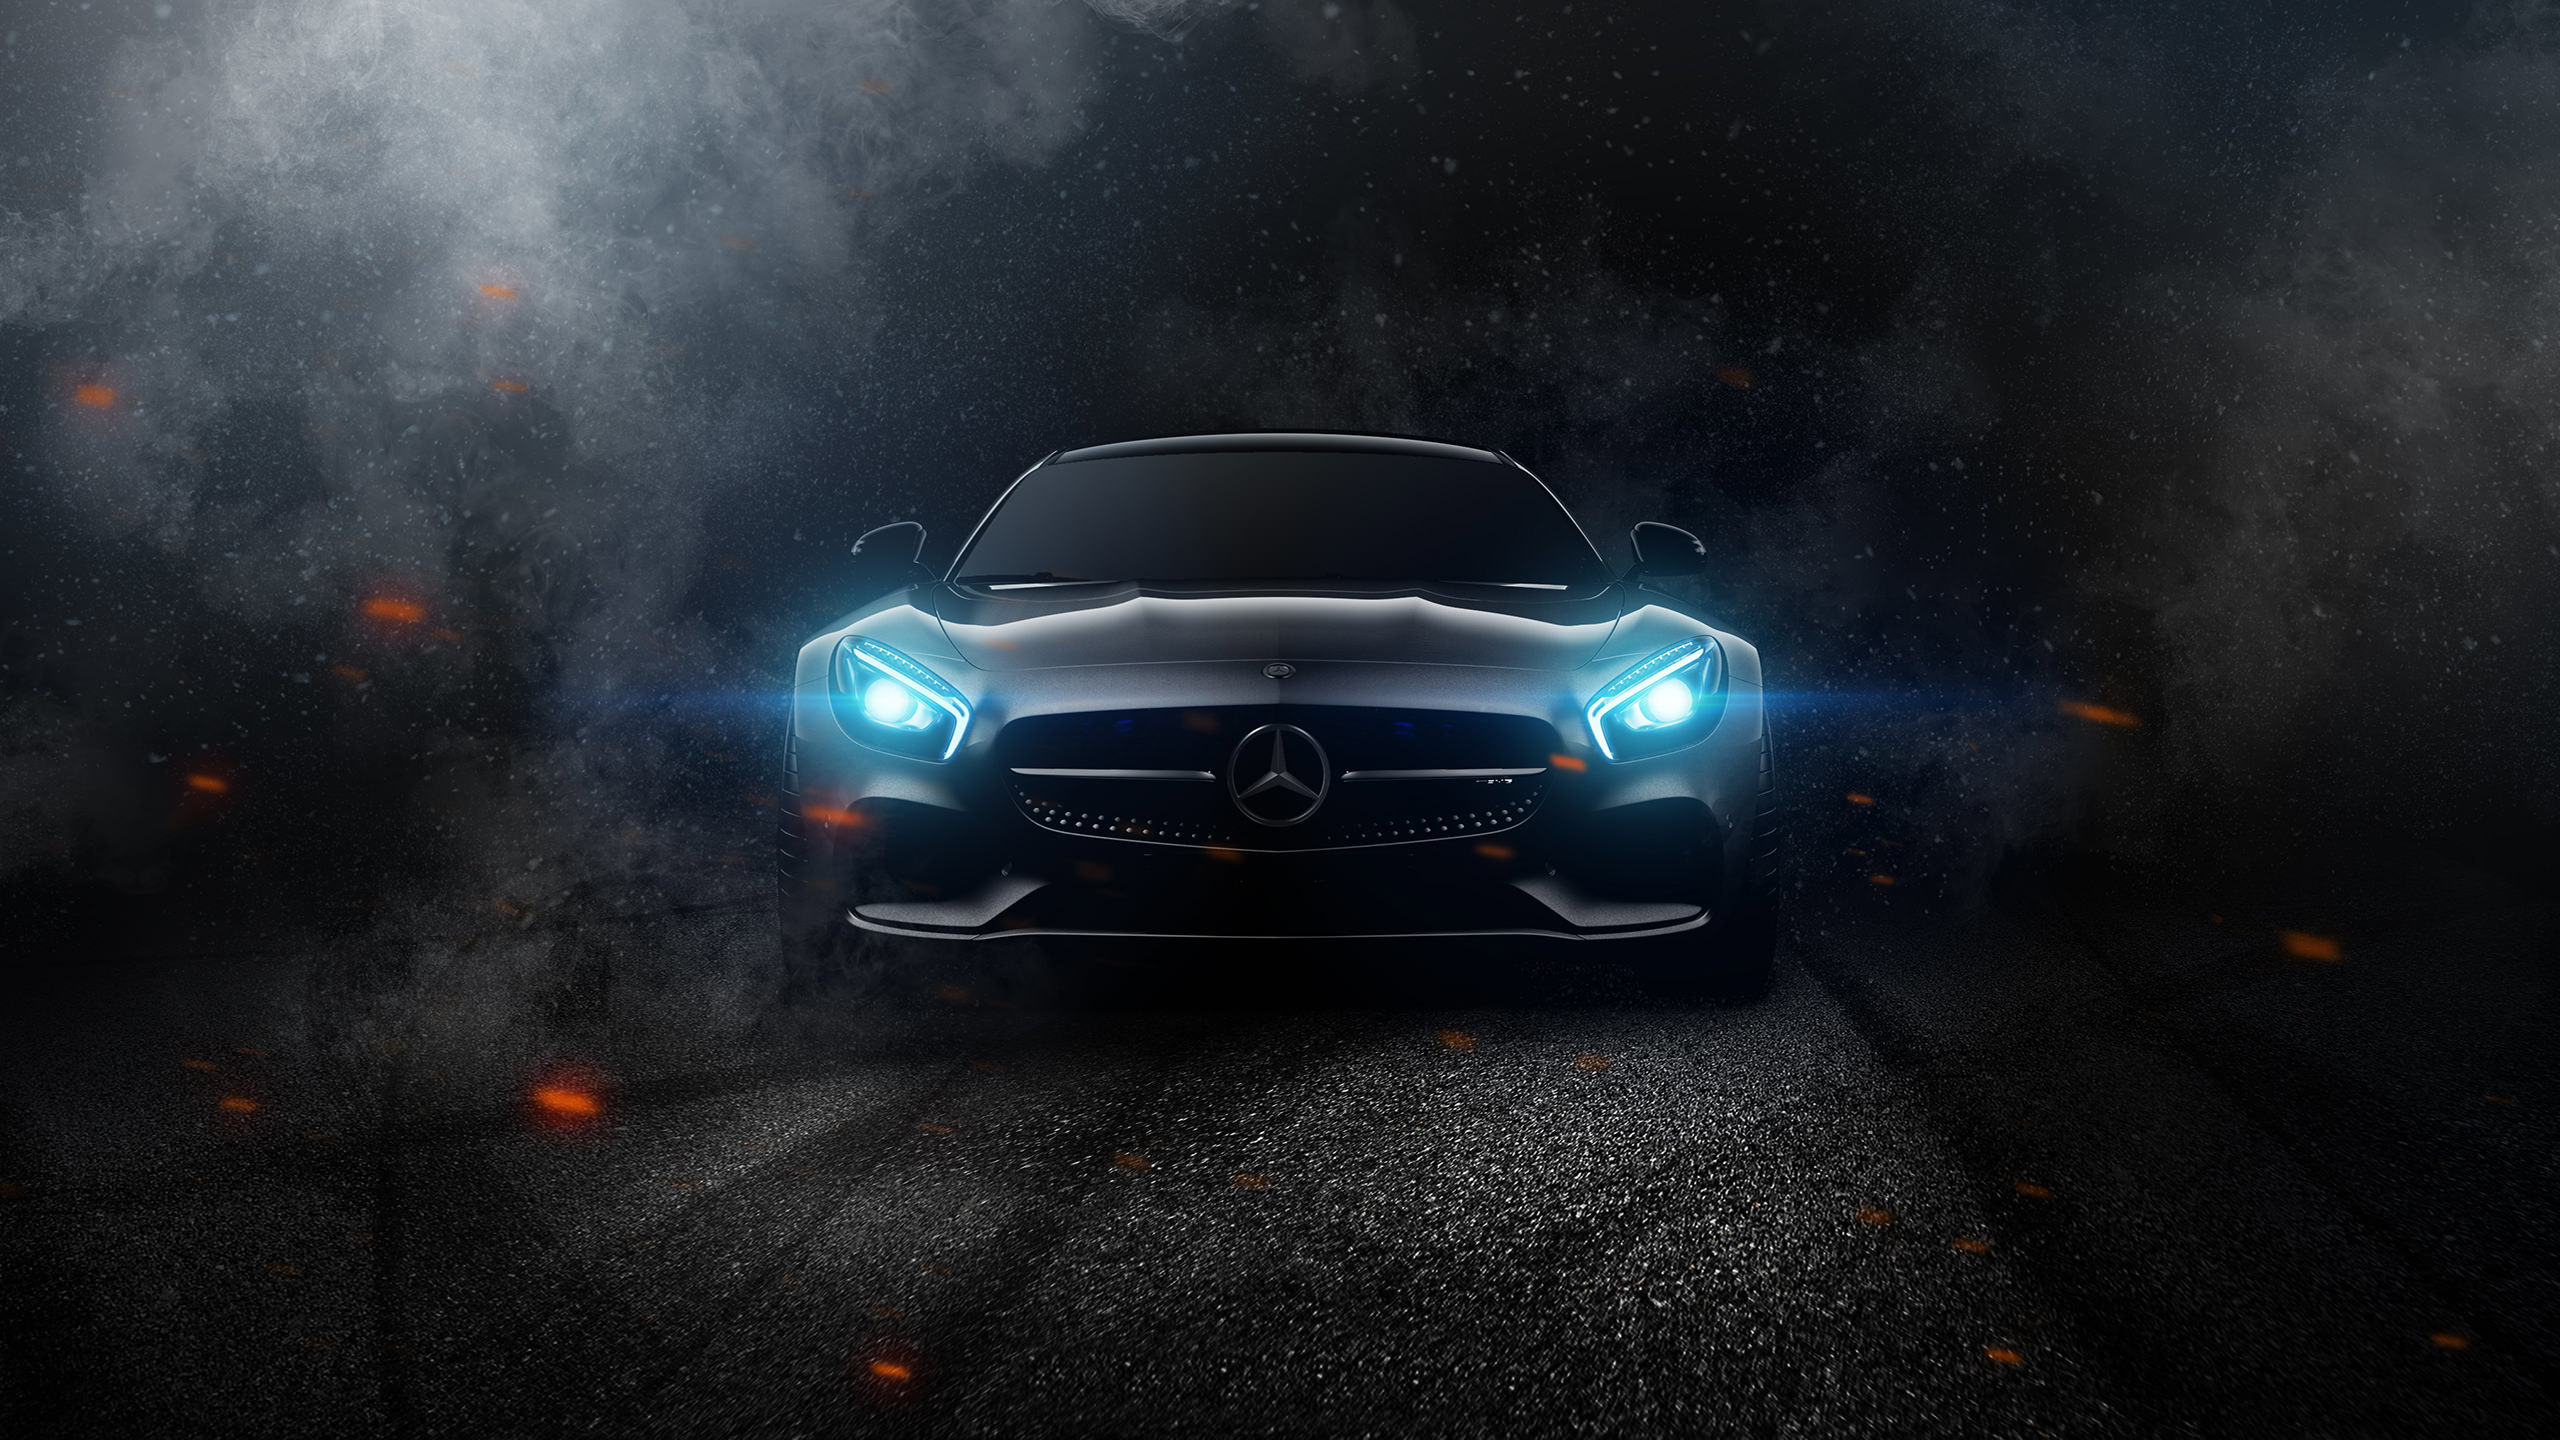 Mercedes Benz Wallpaper 53 2560x1440